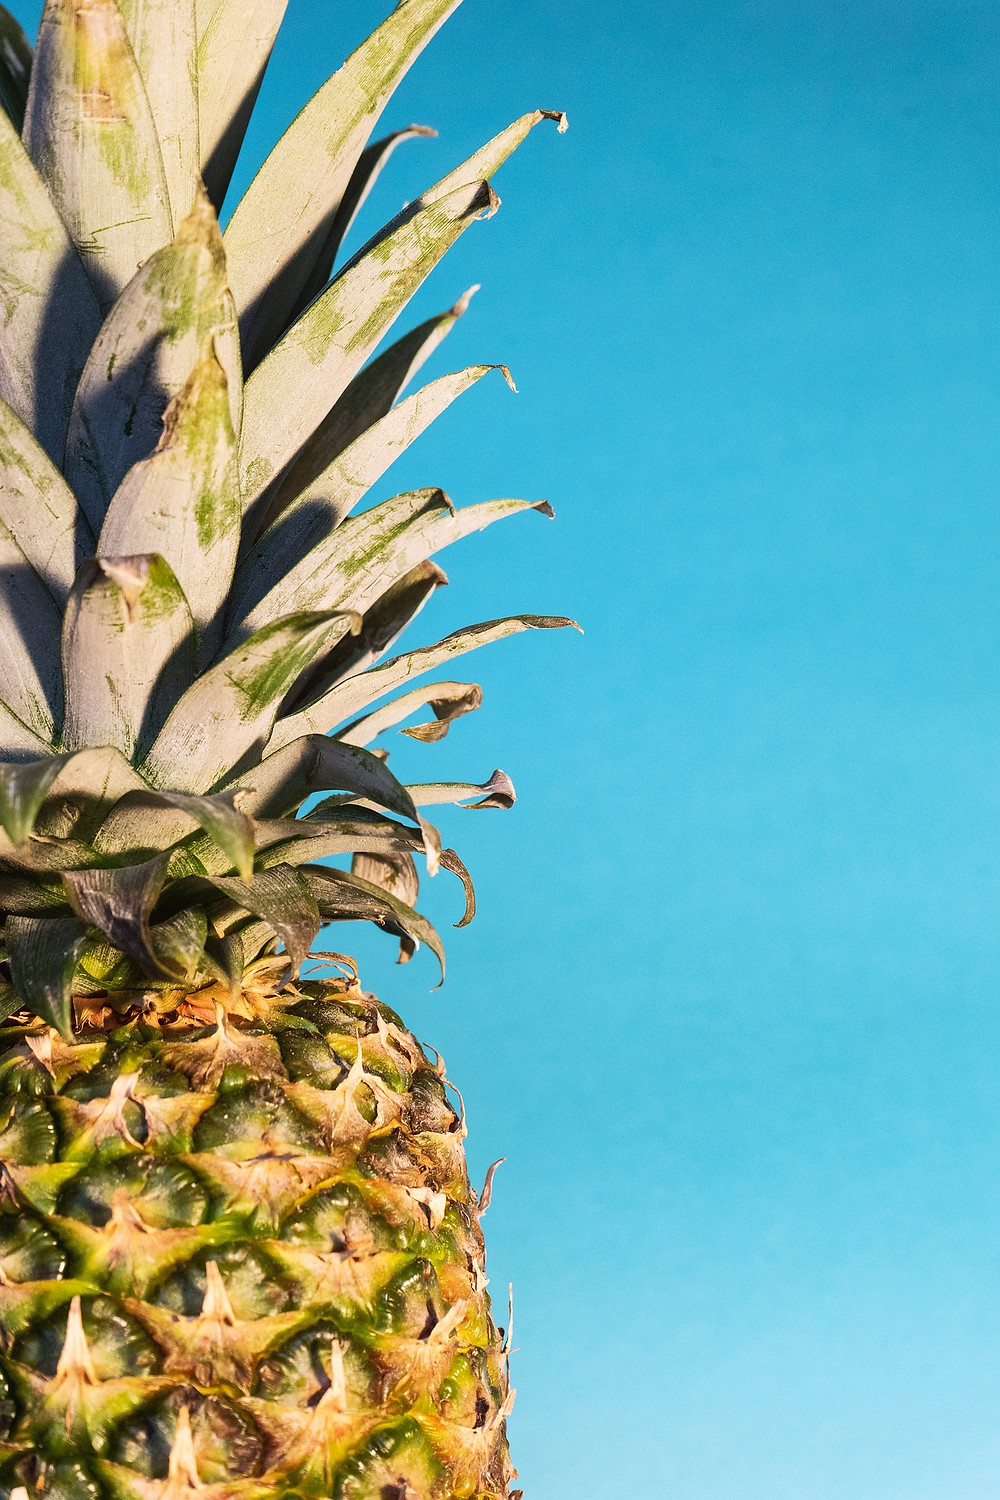 bromelain from pineapple is a potent naturopathic anti-inflammatory herbal compound